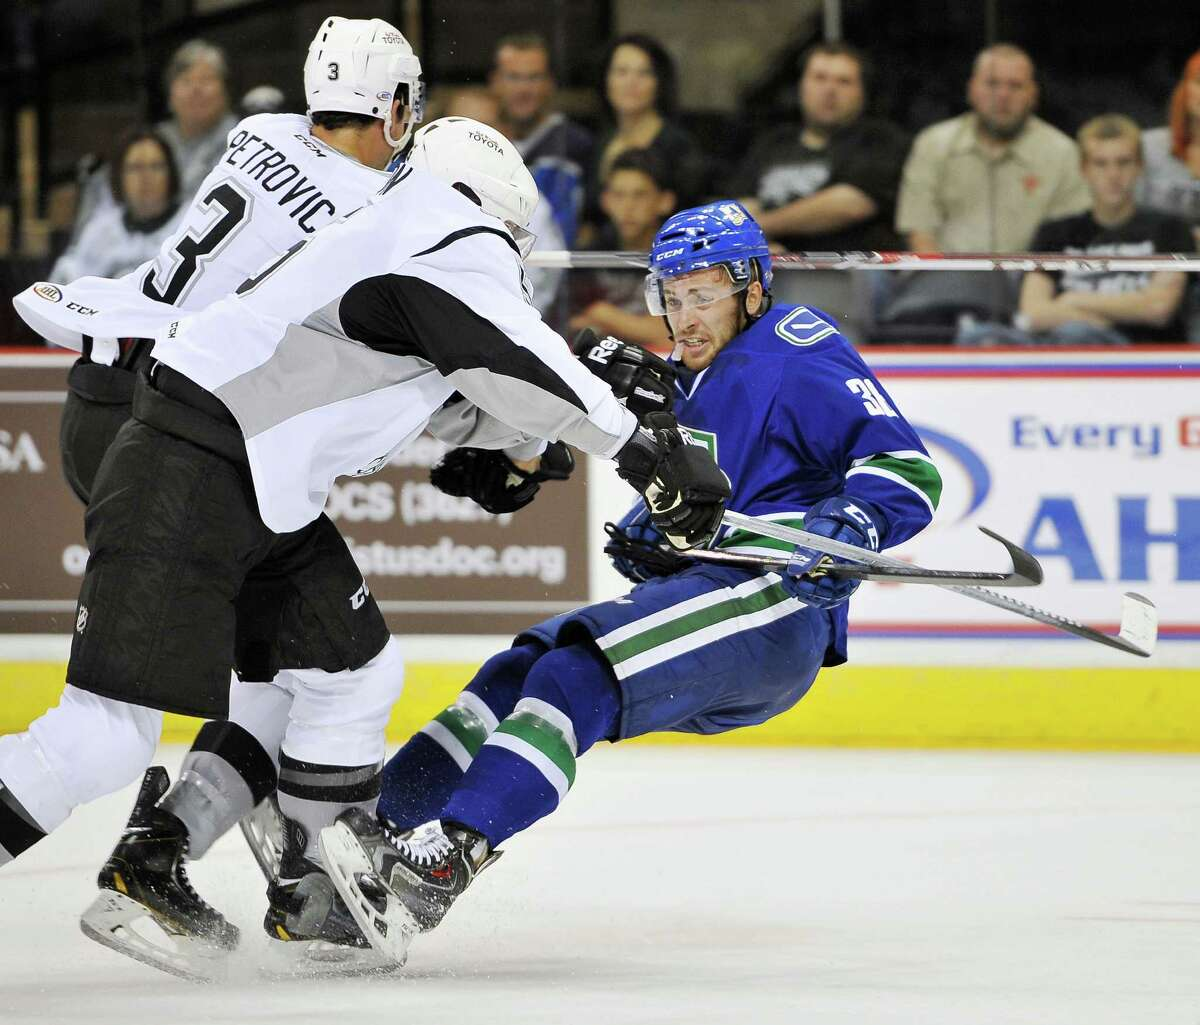 San Antonio Rampage players Alex Petrovic, left, and Greg Zanon, take down Utica Comets' Wacey Hamilton during the first period of an AHL hockey game, Friday, Oct. 17, 2014, in San Antonio. (Darren Abate/AHL)